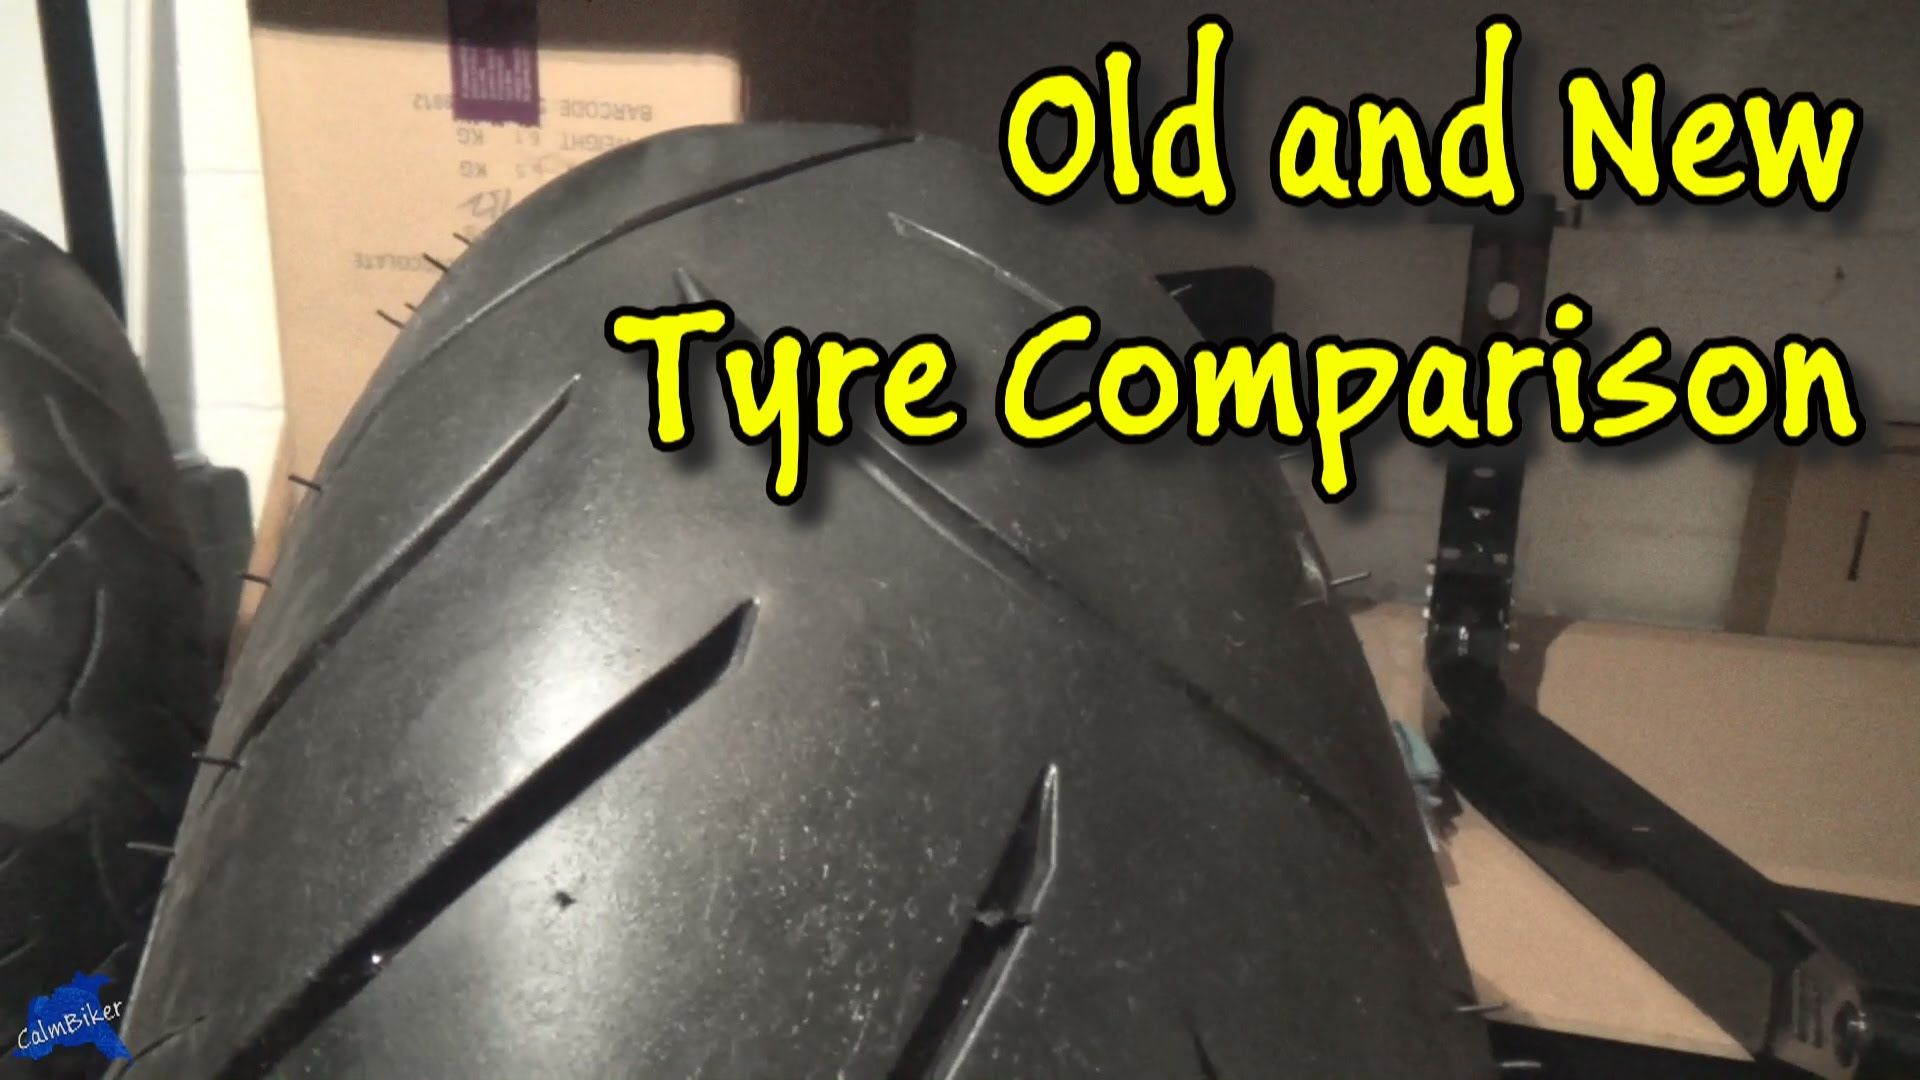 Old And New Tyre Comparison Tyre Comparison New Tyres Old And New